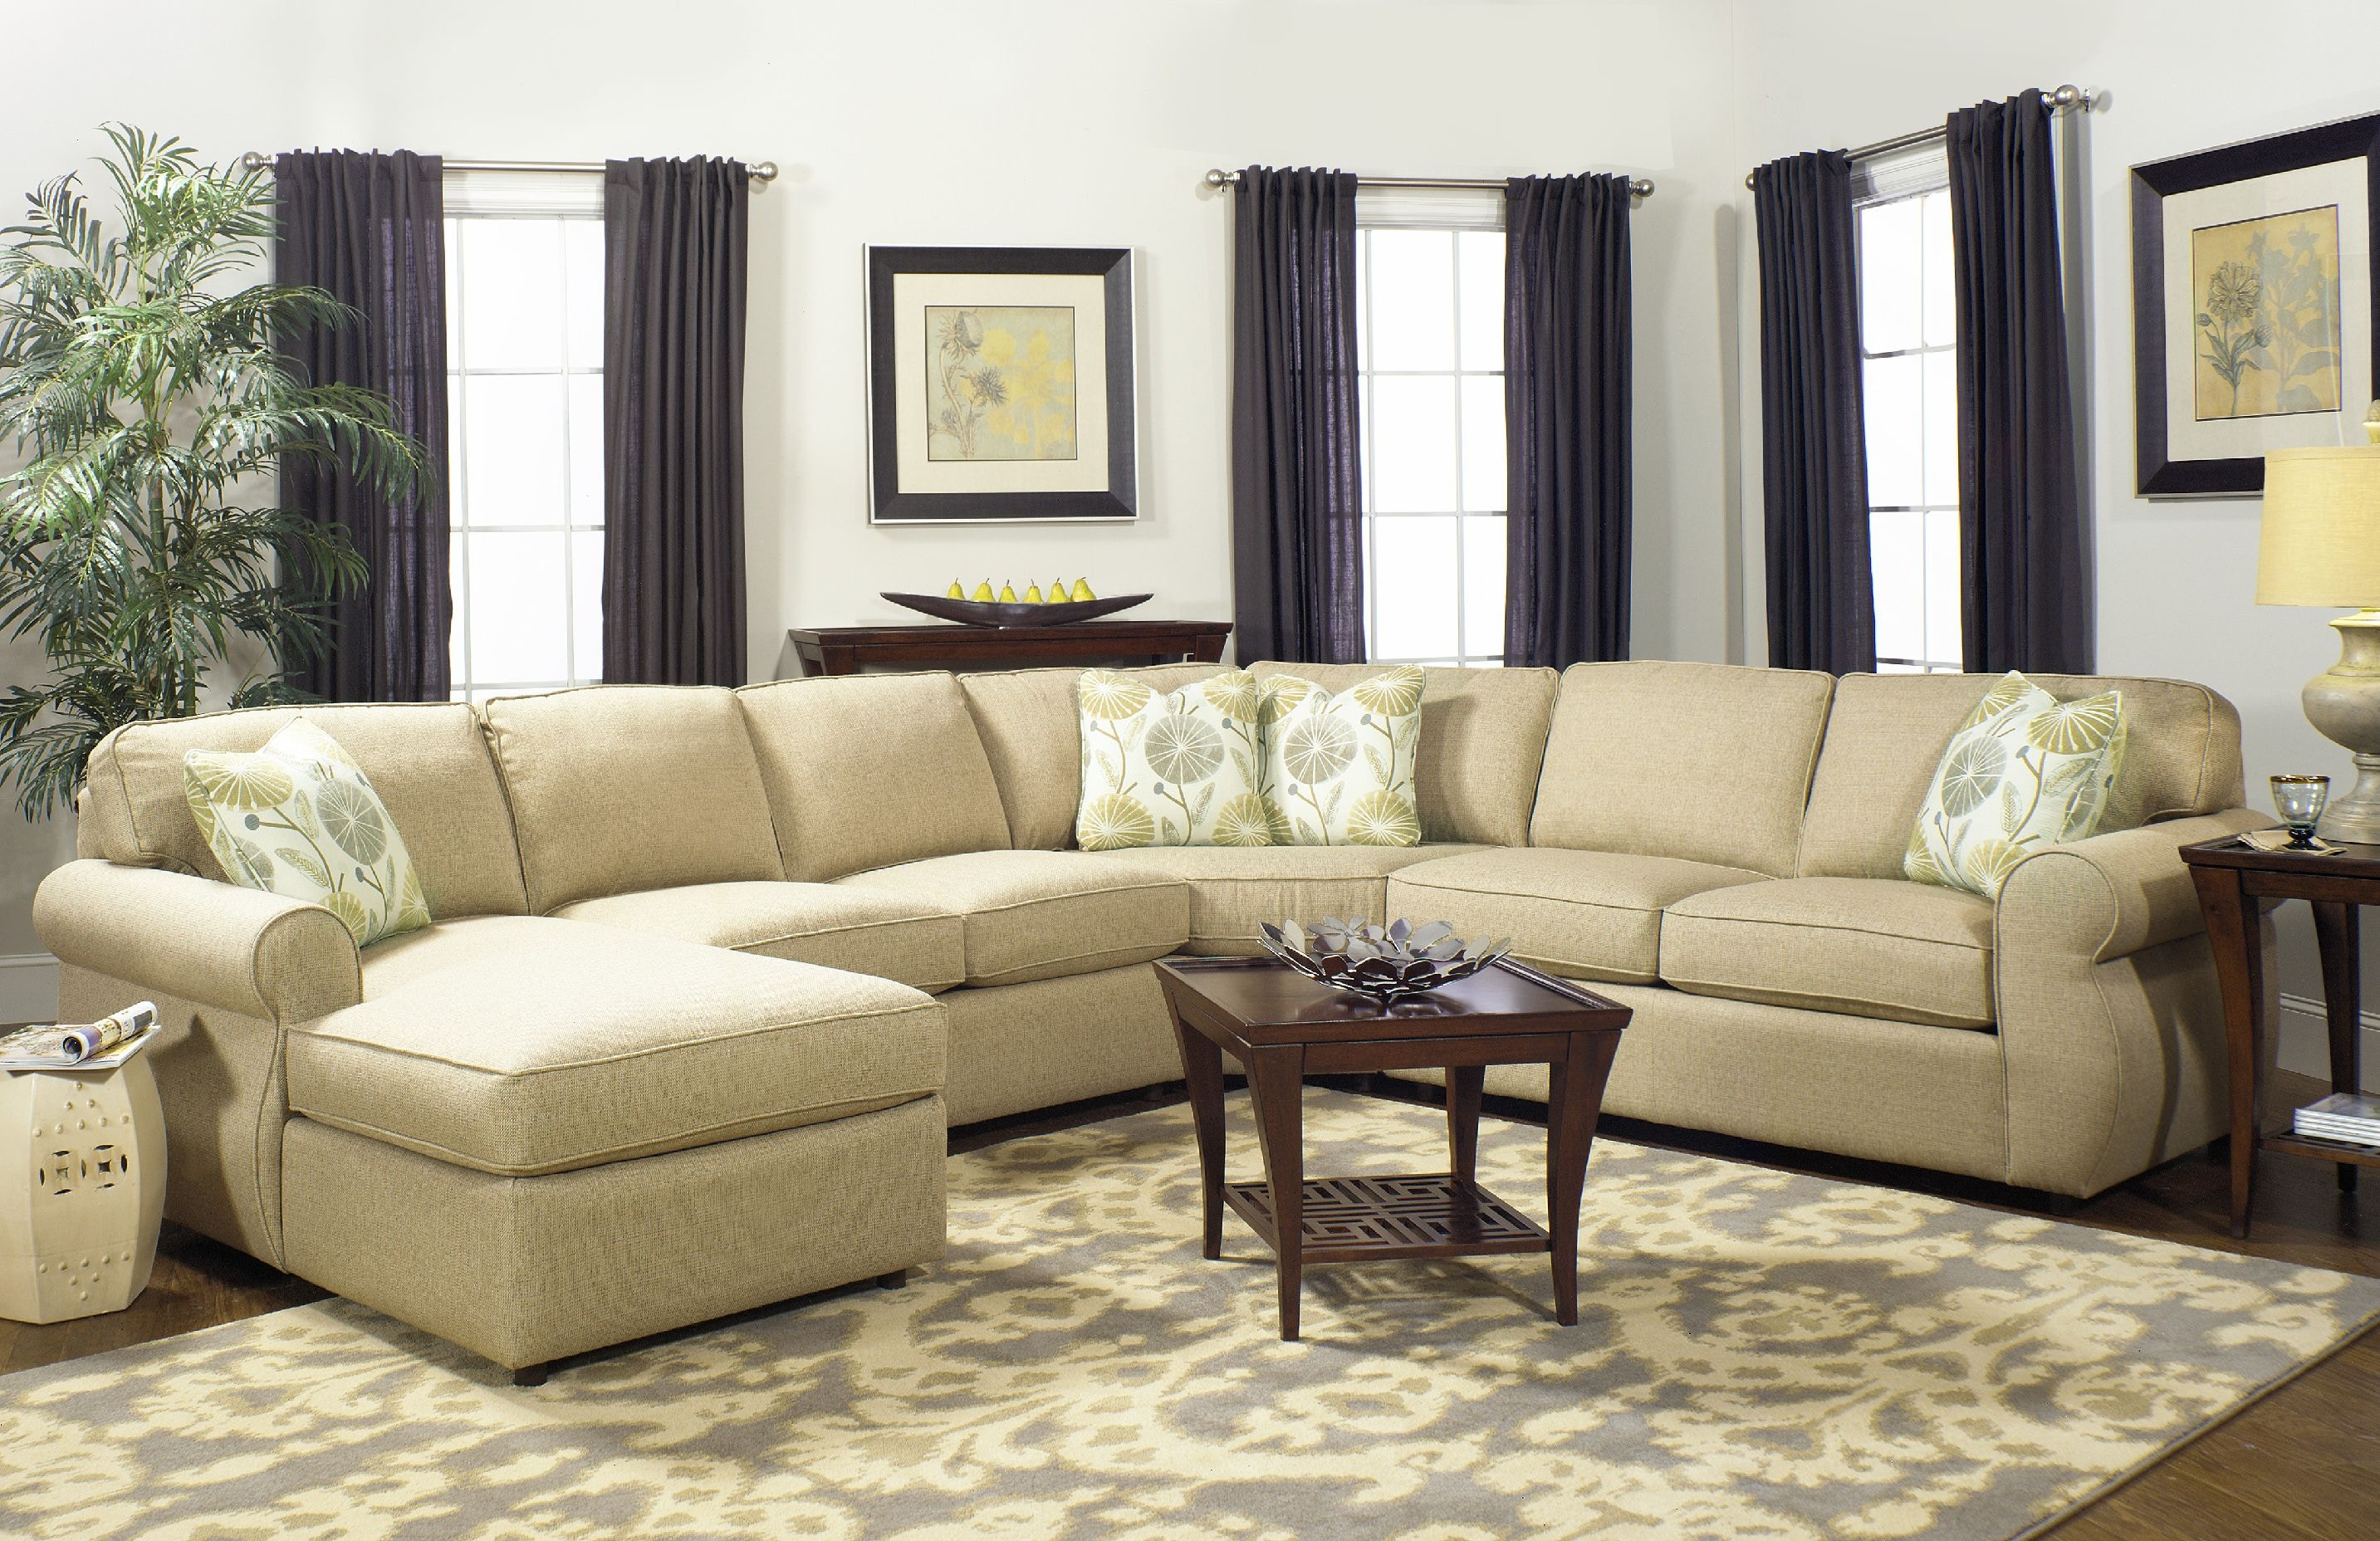 ... Craftmaster Sectional 7301-Sect (Sleeper also available) : craftmaster sectional - Sectionals, Sofas & Couches